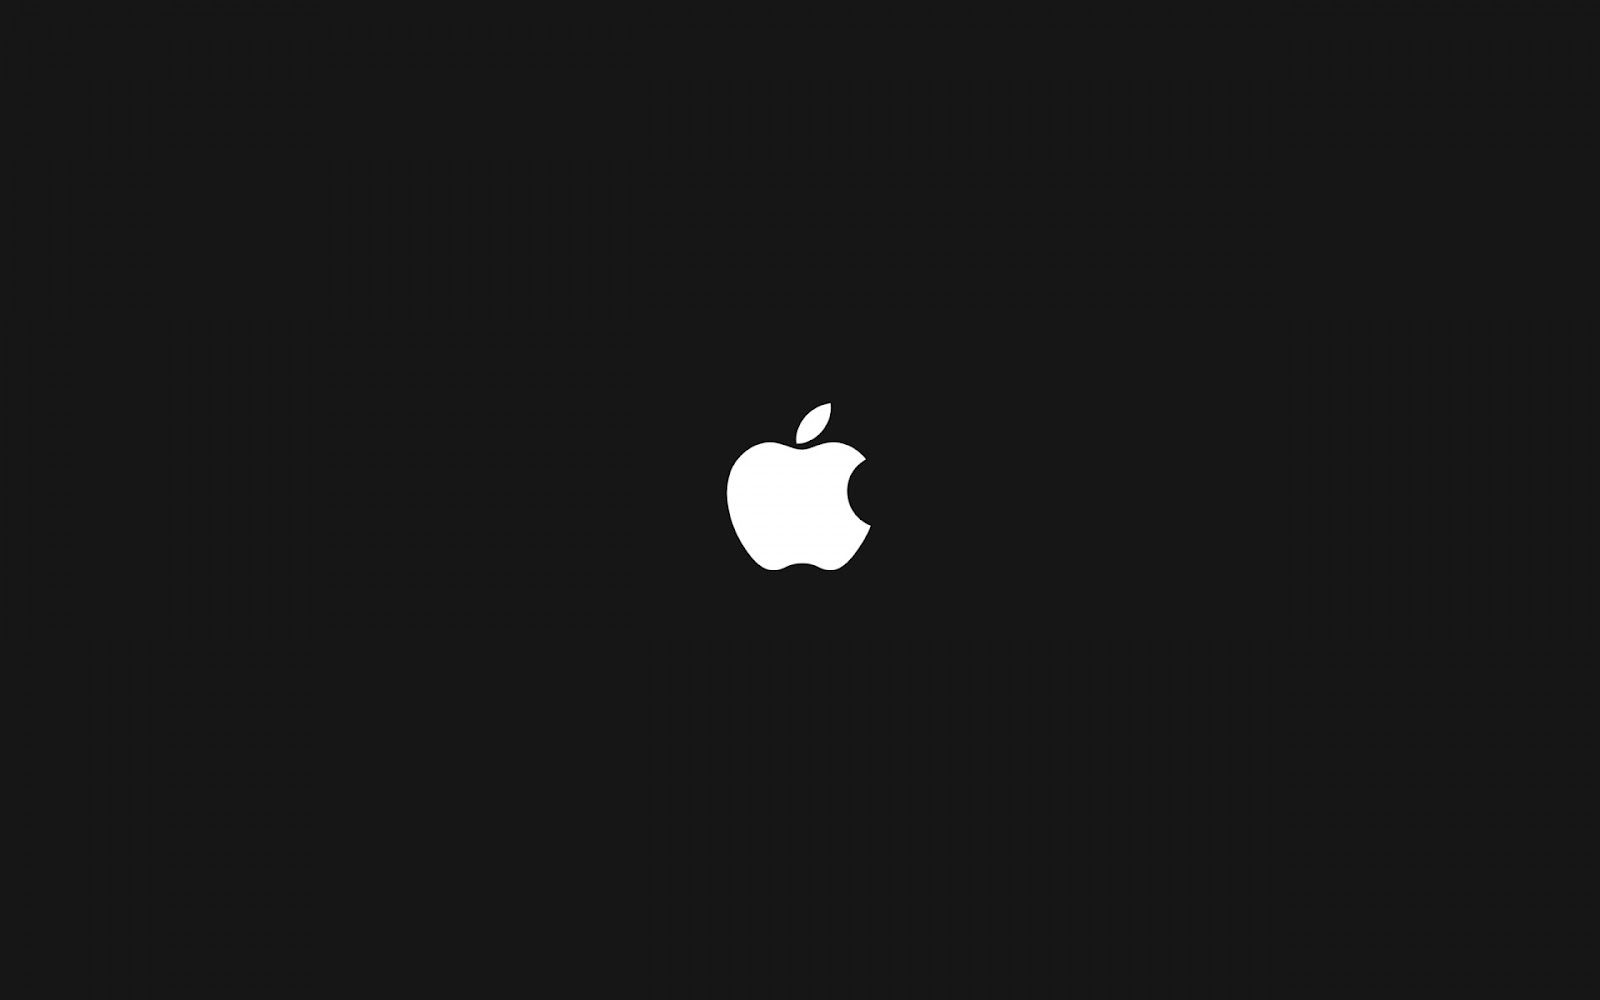 Full Hd Wallpapers Apple